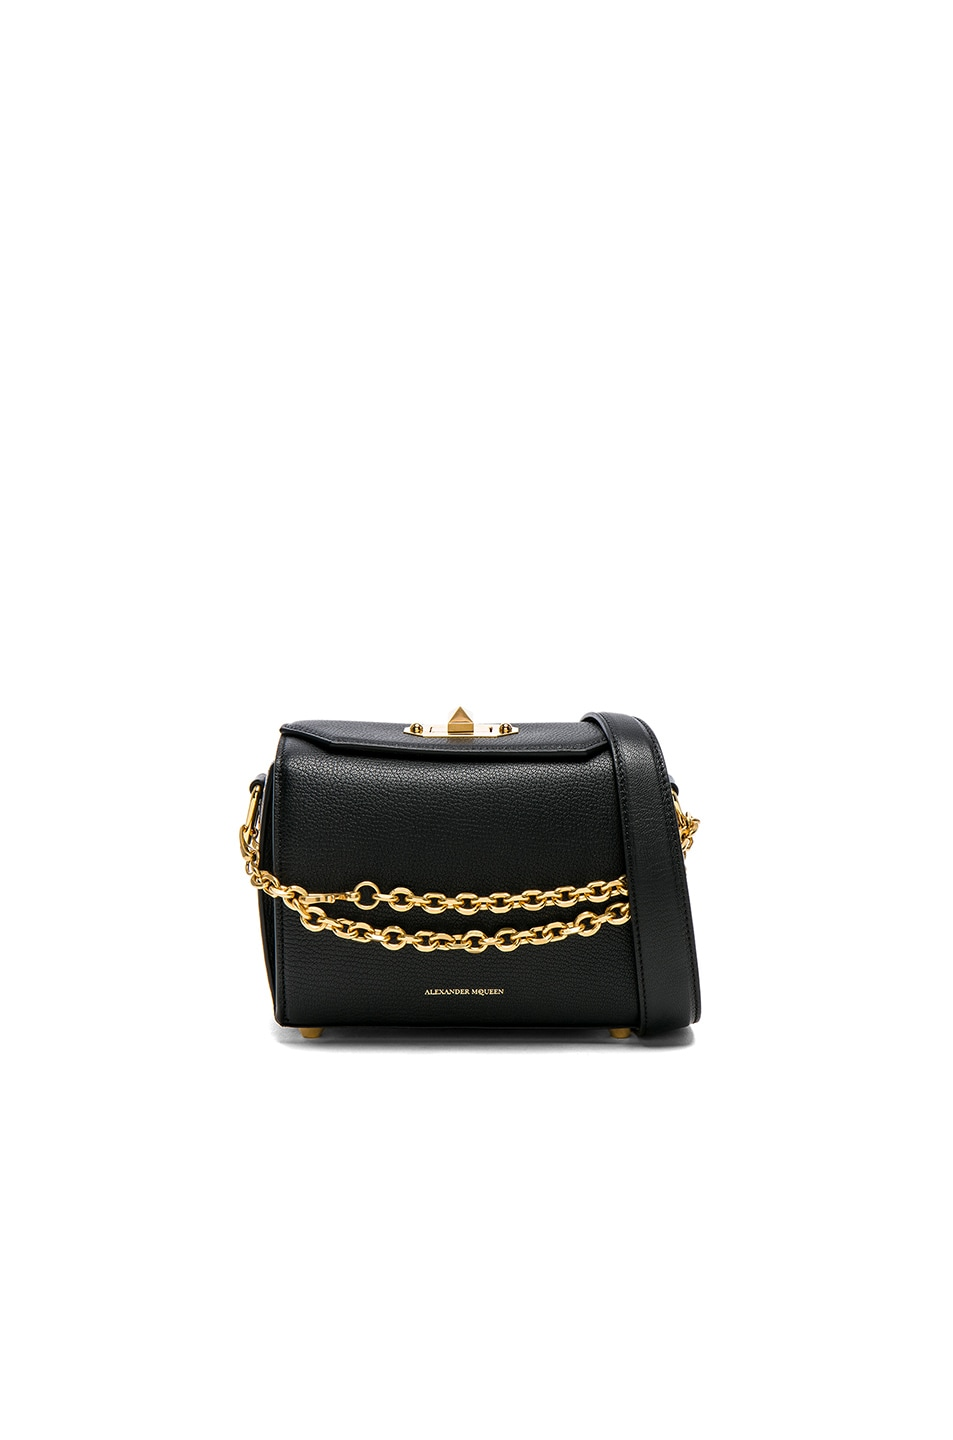 Image 1 of Alexander McQueen Box Bag in Black